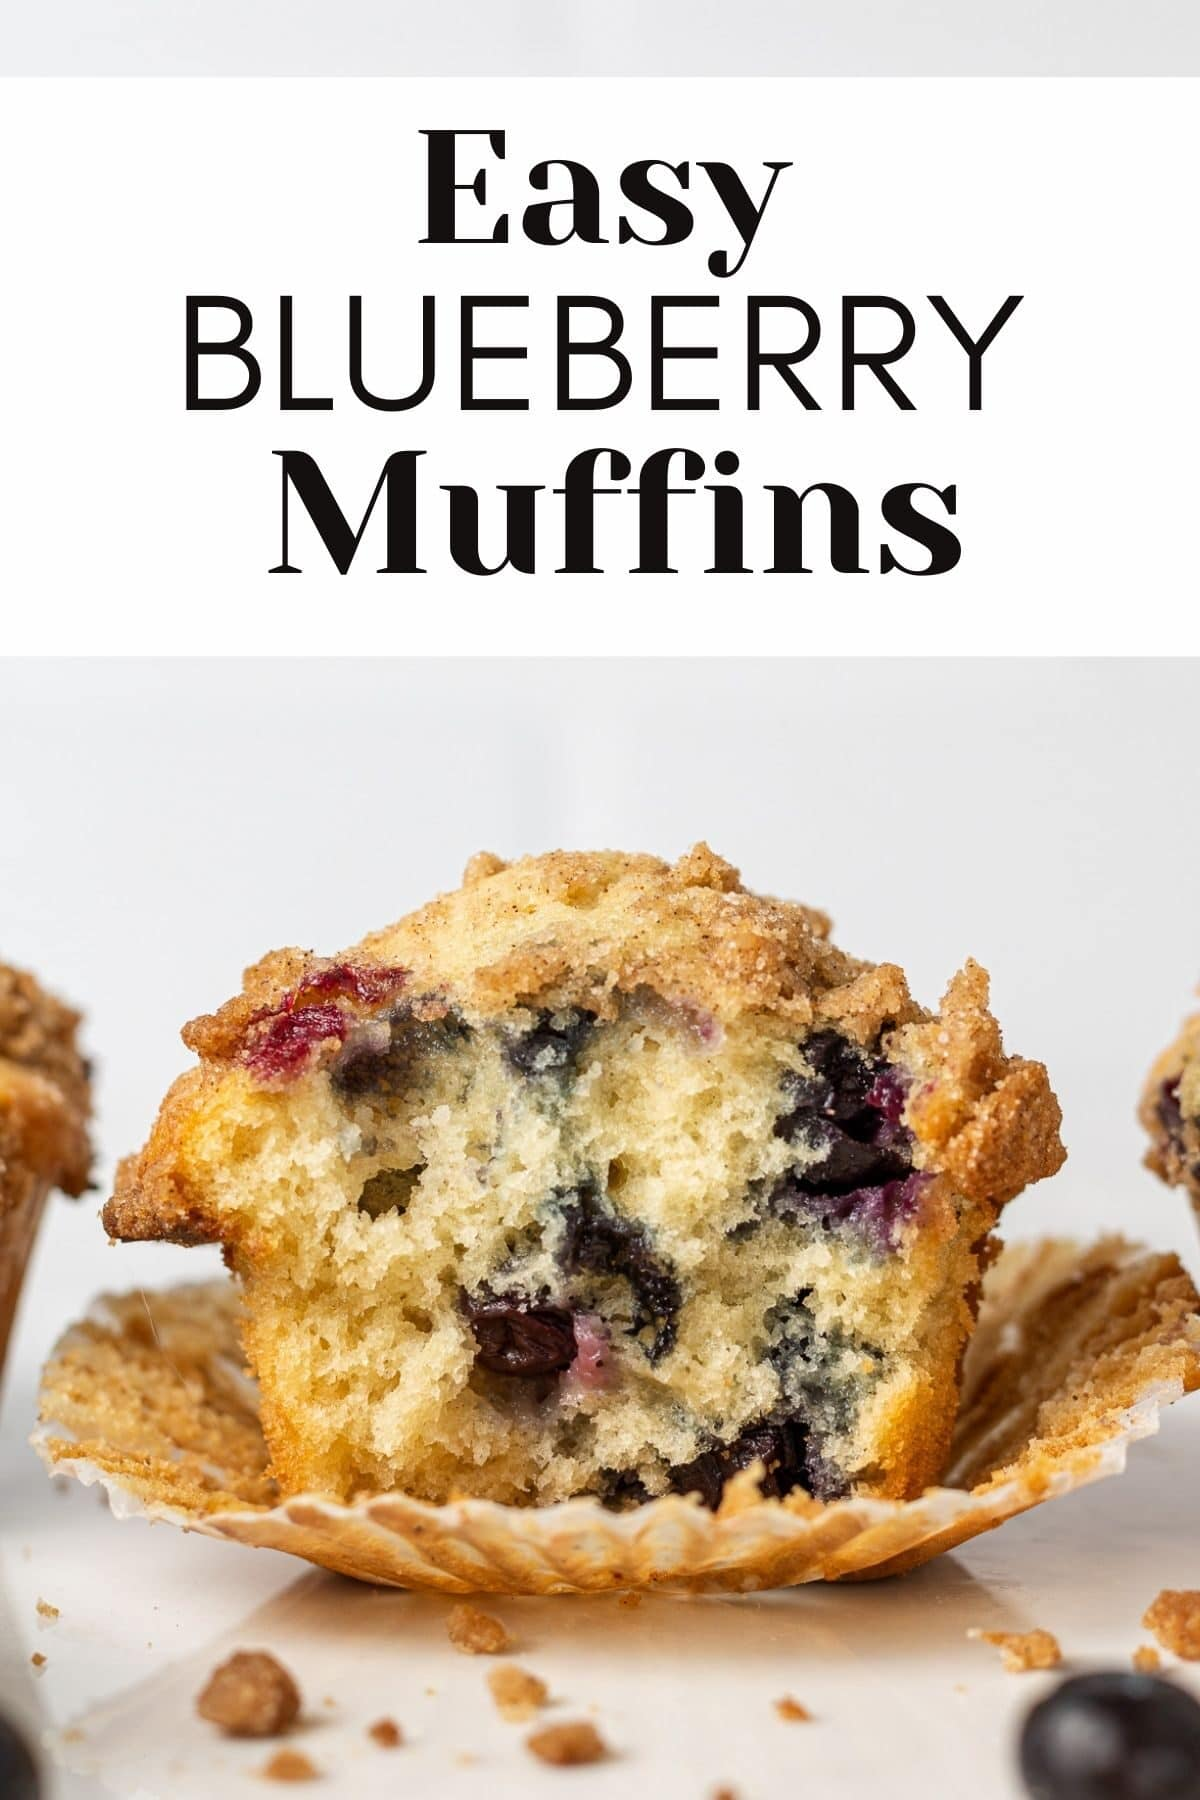 """dairy free blueberry muffin with a bite out of it and crumbs around it with text overlay reading """"easy blueberry muffins"""""""